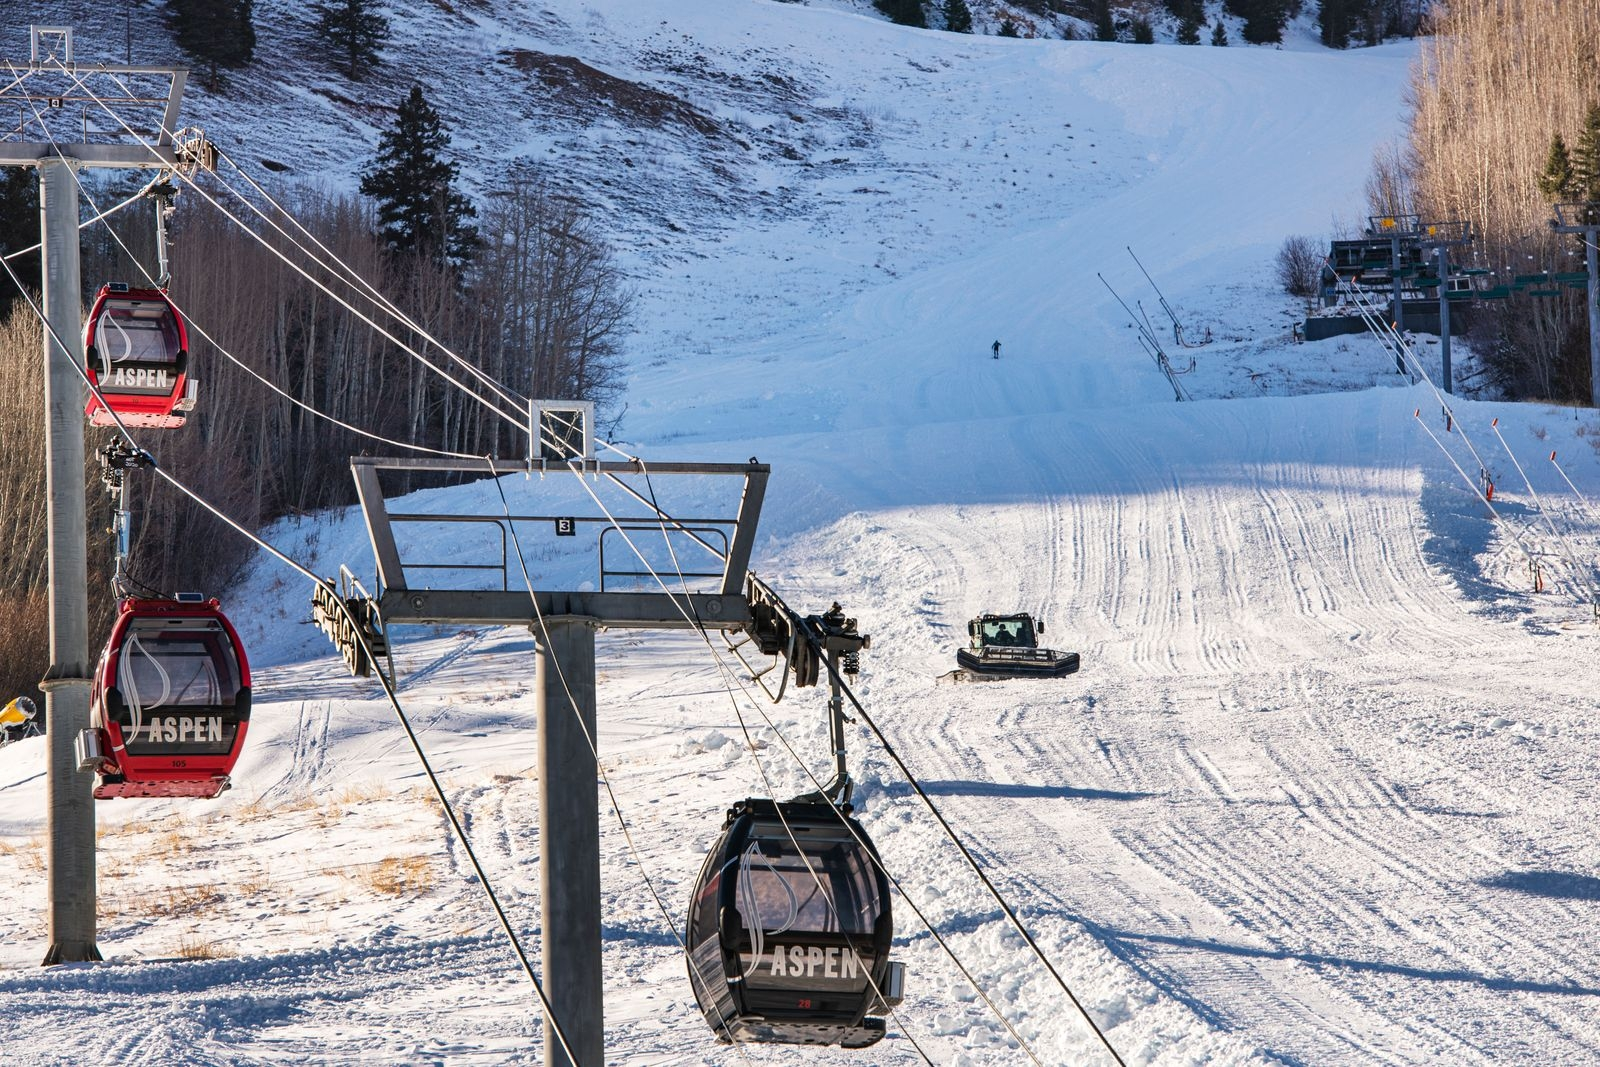 Aspen Skiing Company grooms the Little Nell run on Aspen Mountain in preparation for a Thanksgiving opening day on Tuesday, Nov. 17, 2020. (Kelsey Brunner/The Aspen Times)